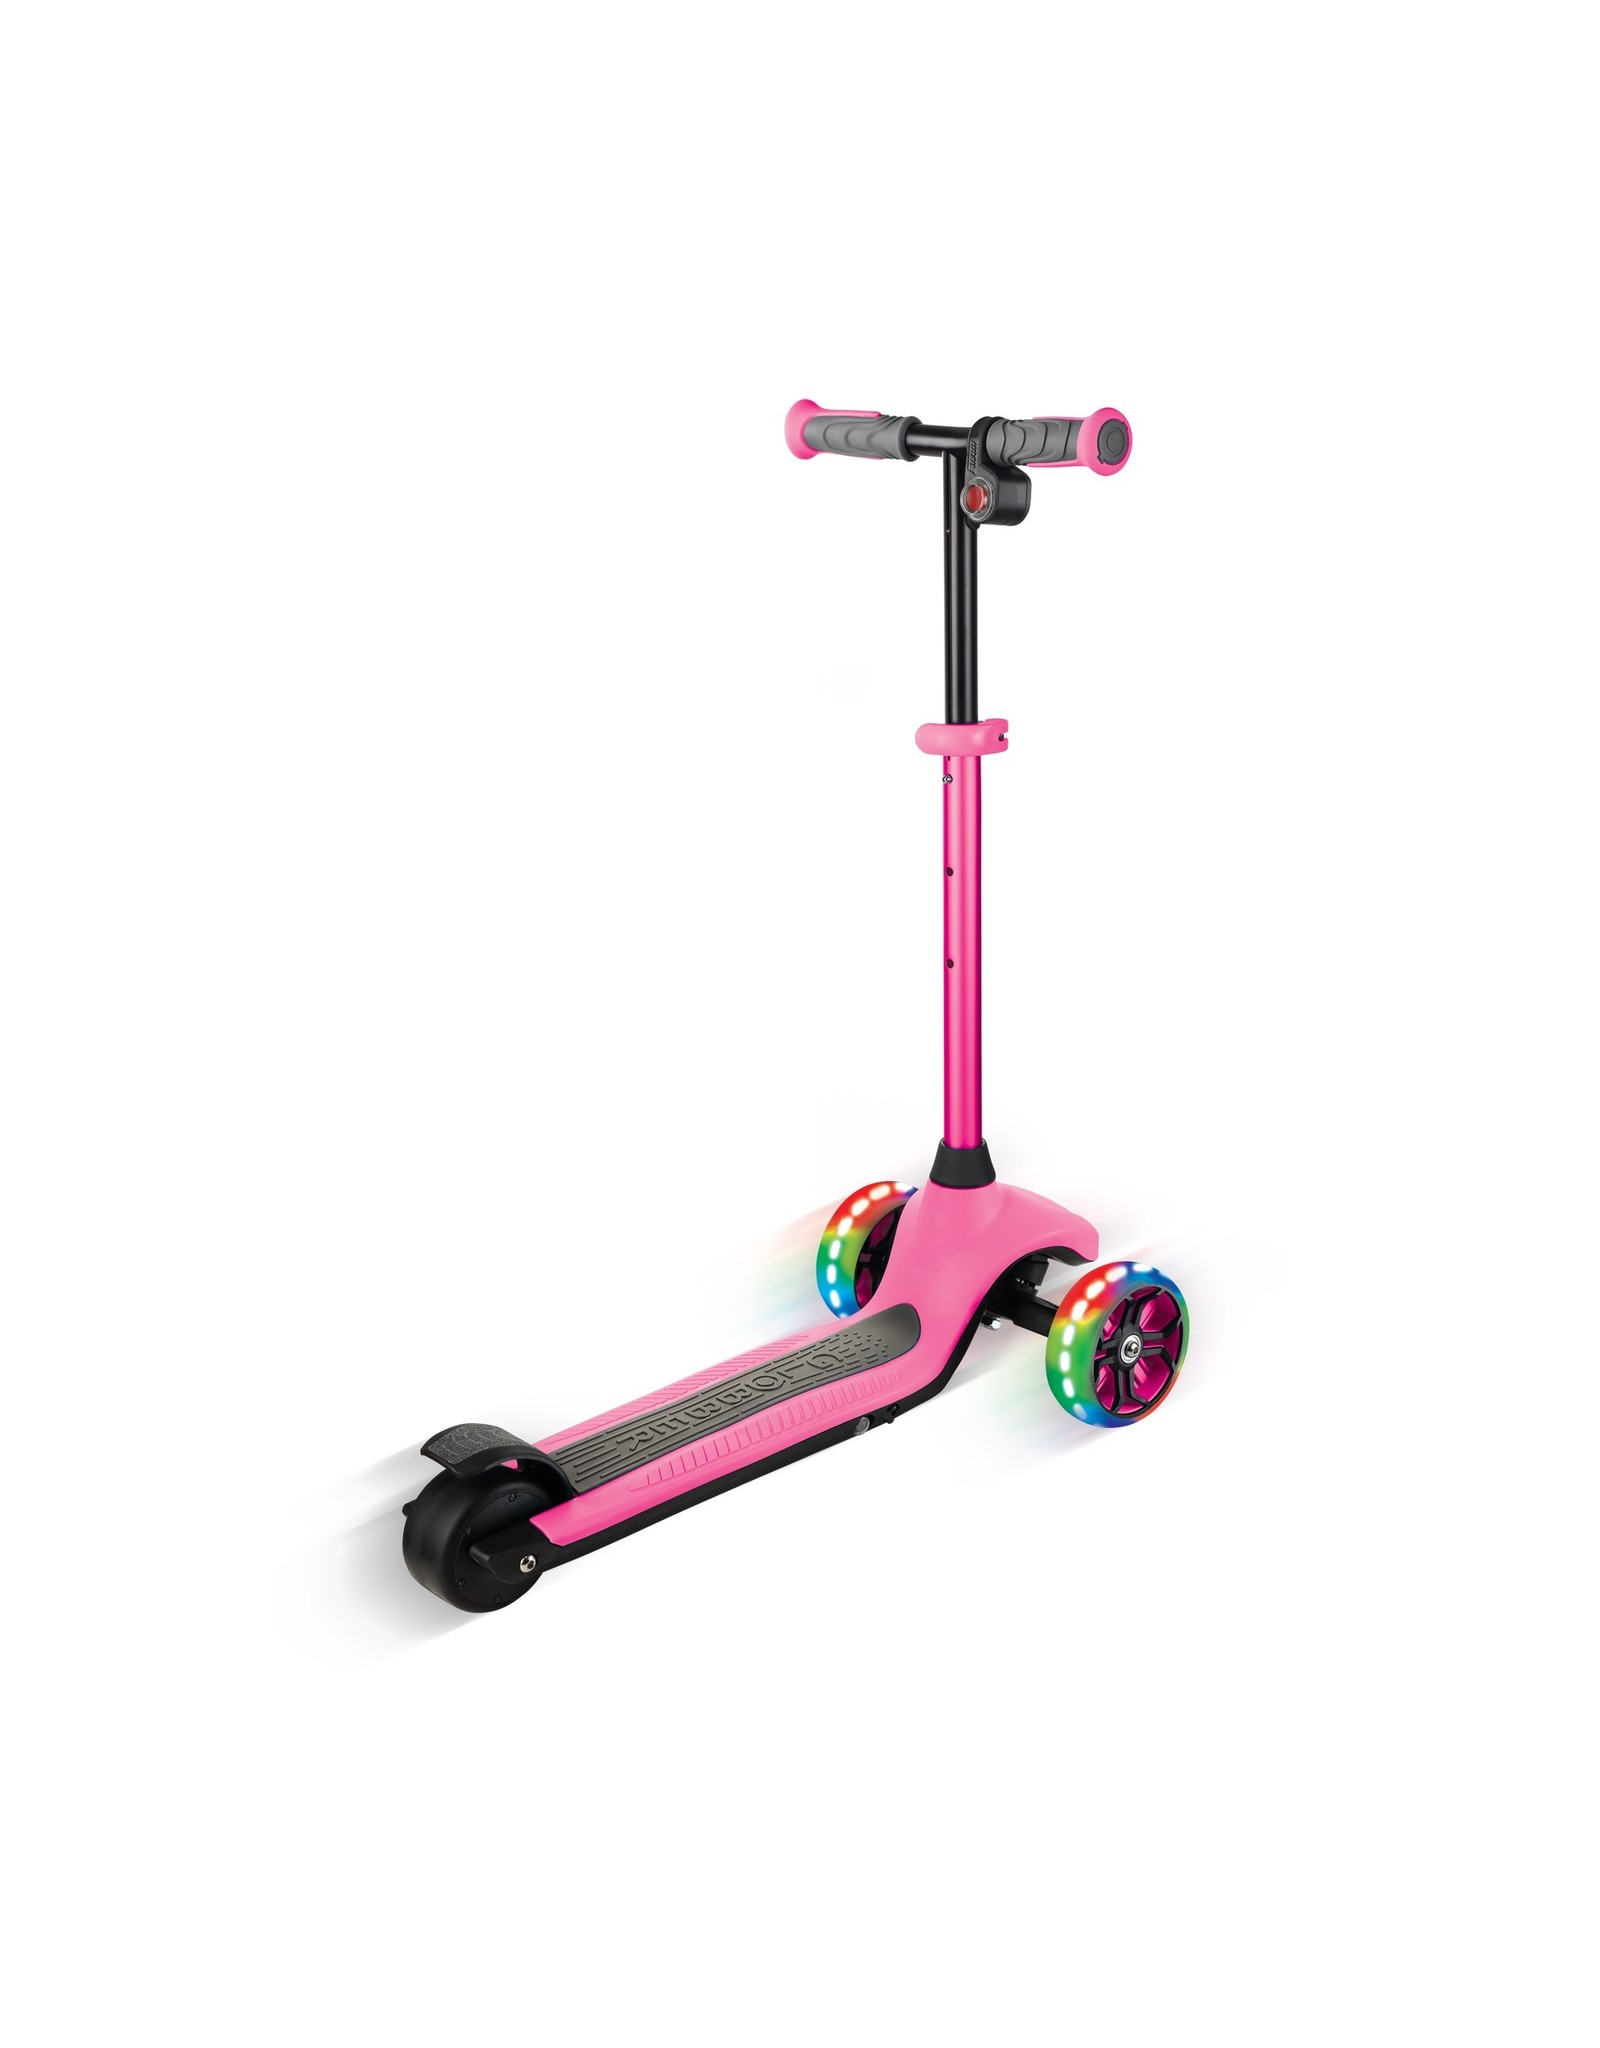 Globber E4 Electric Scooter - Pink